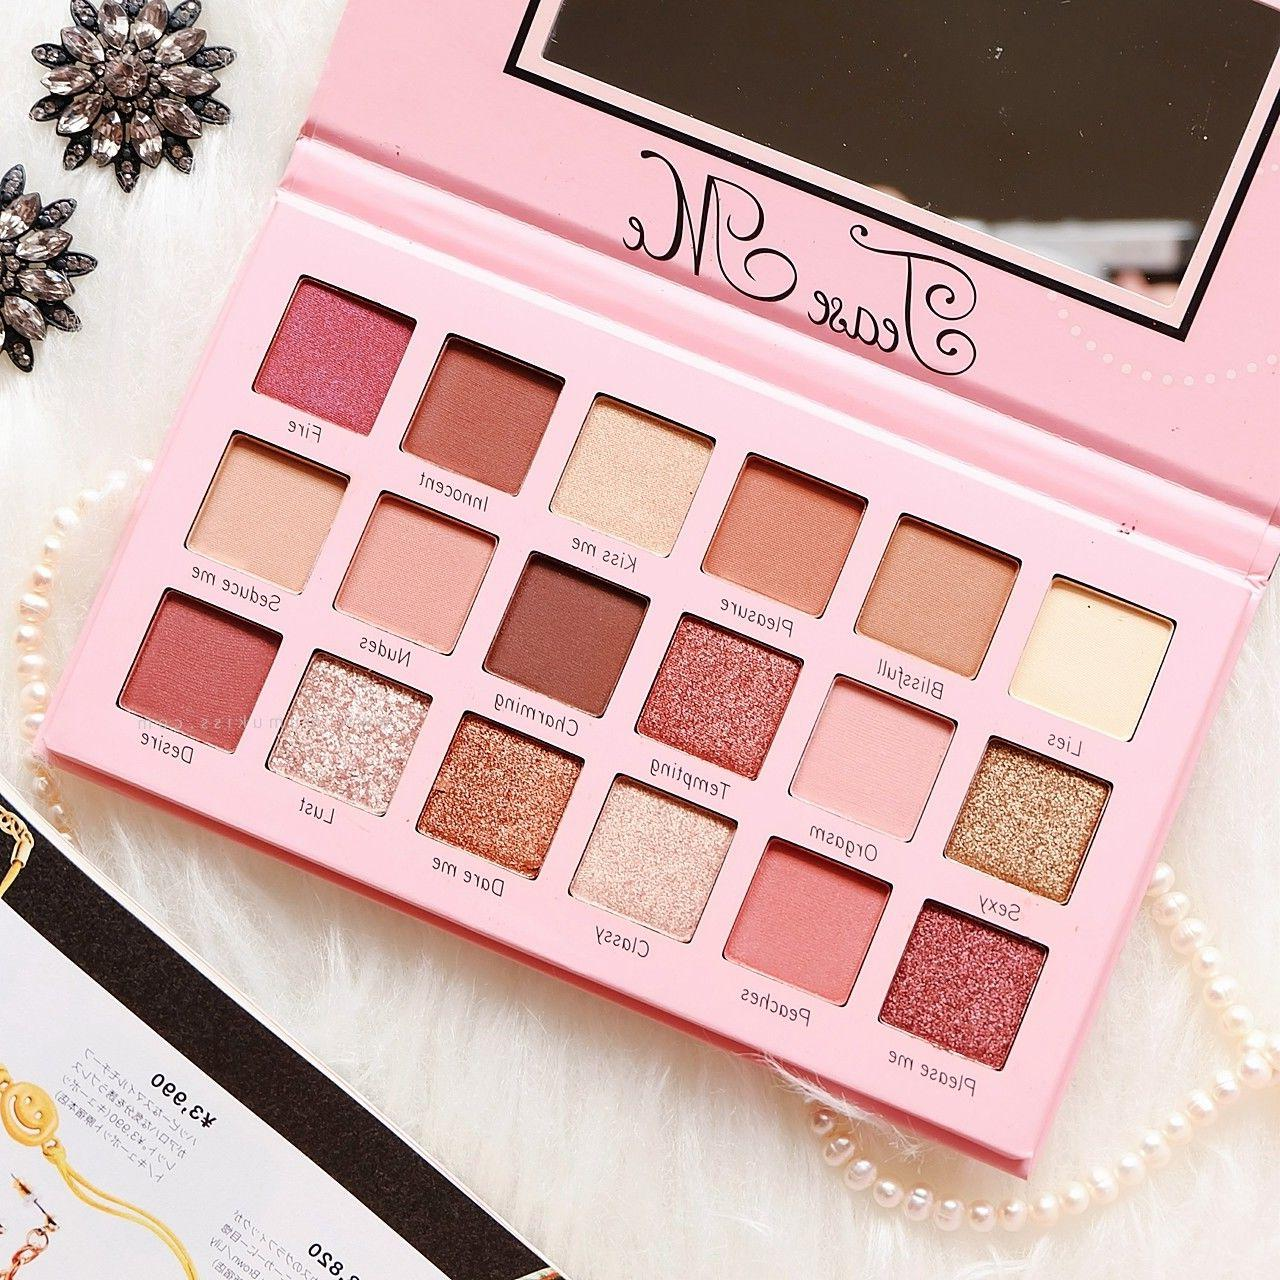 Tease Me Palette Beauty colors Highly Pigmented